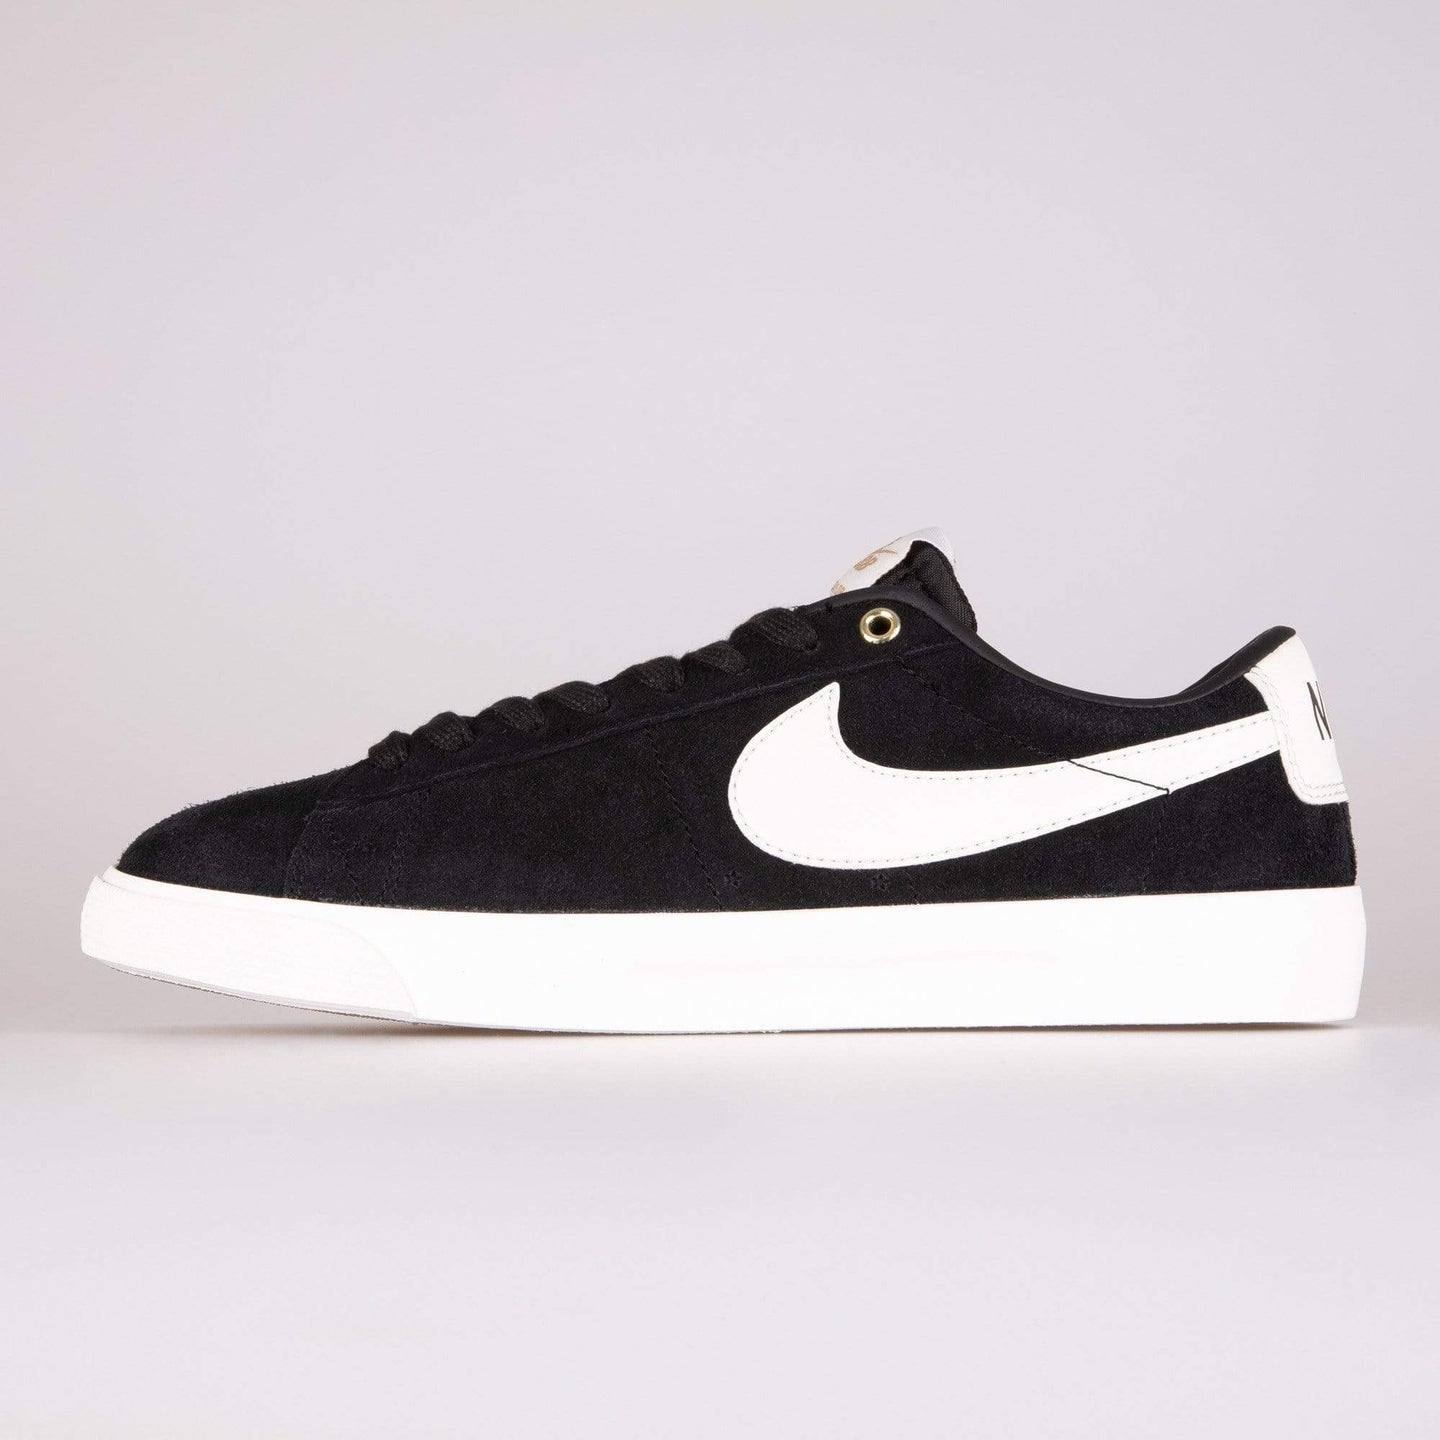 Nike SB Zoom Blazer Low GT - Black / Sail UK 7 7049390017 886059306412 Nike SB Trainers